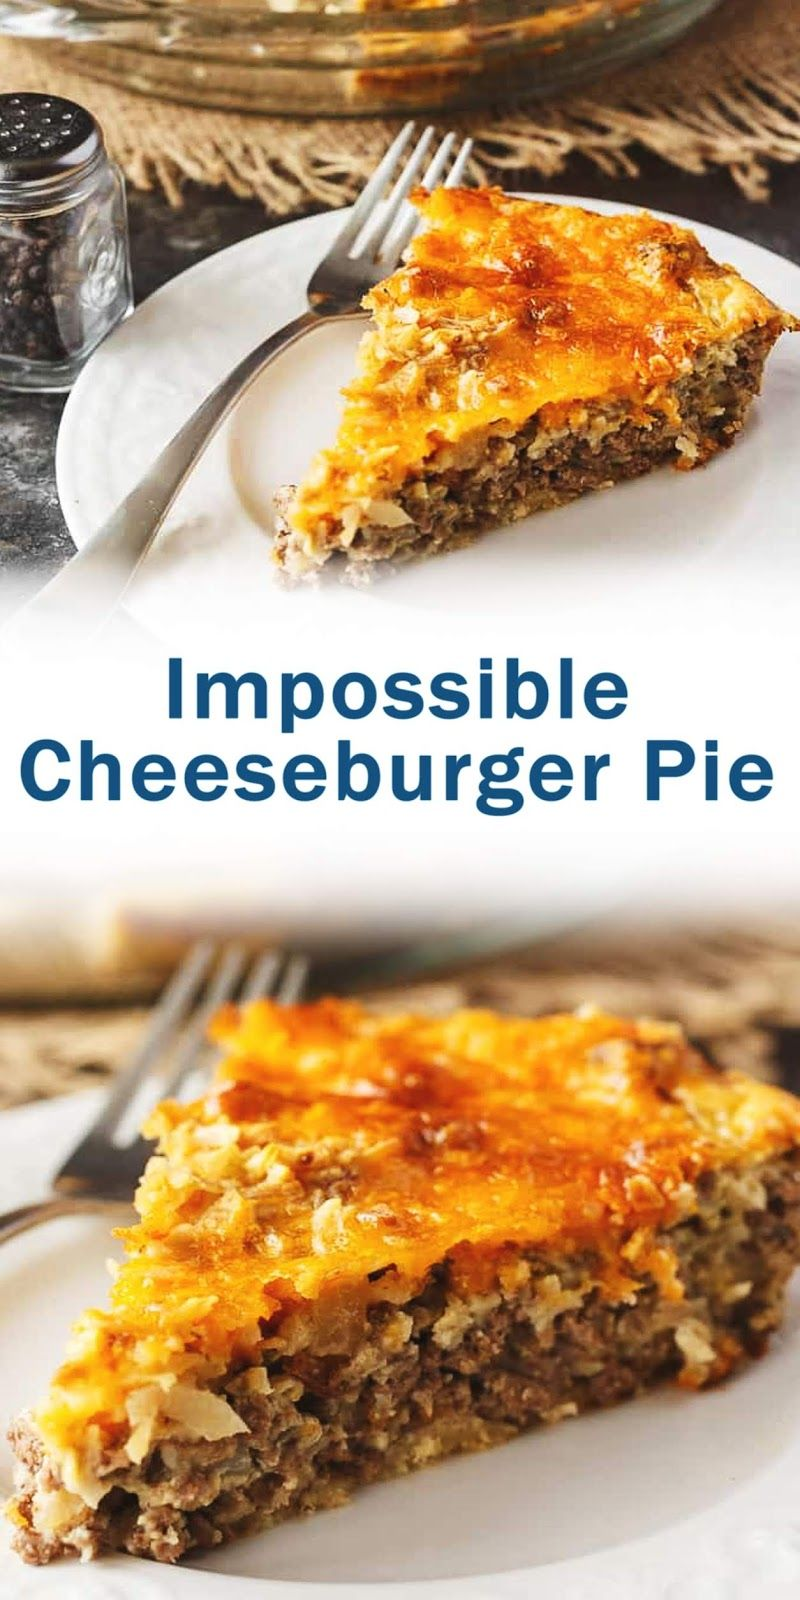 #impossible #cheeseburger #pie #